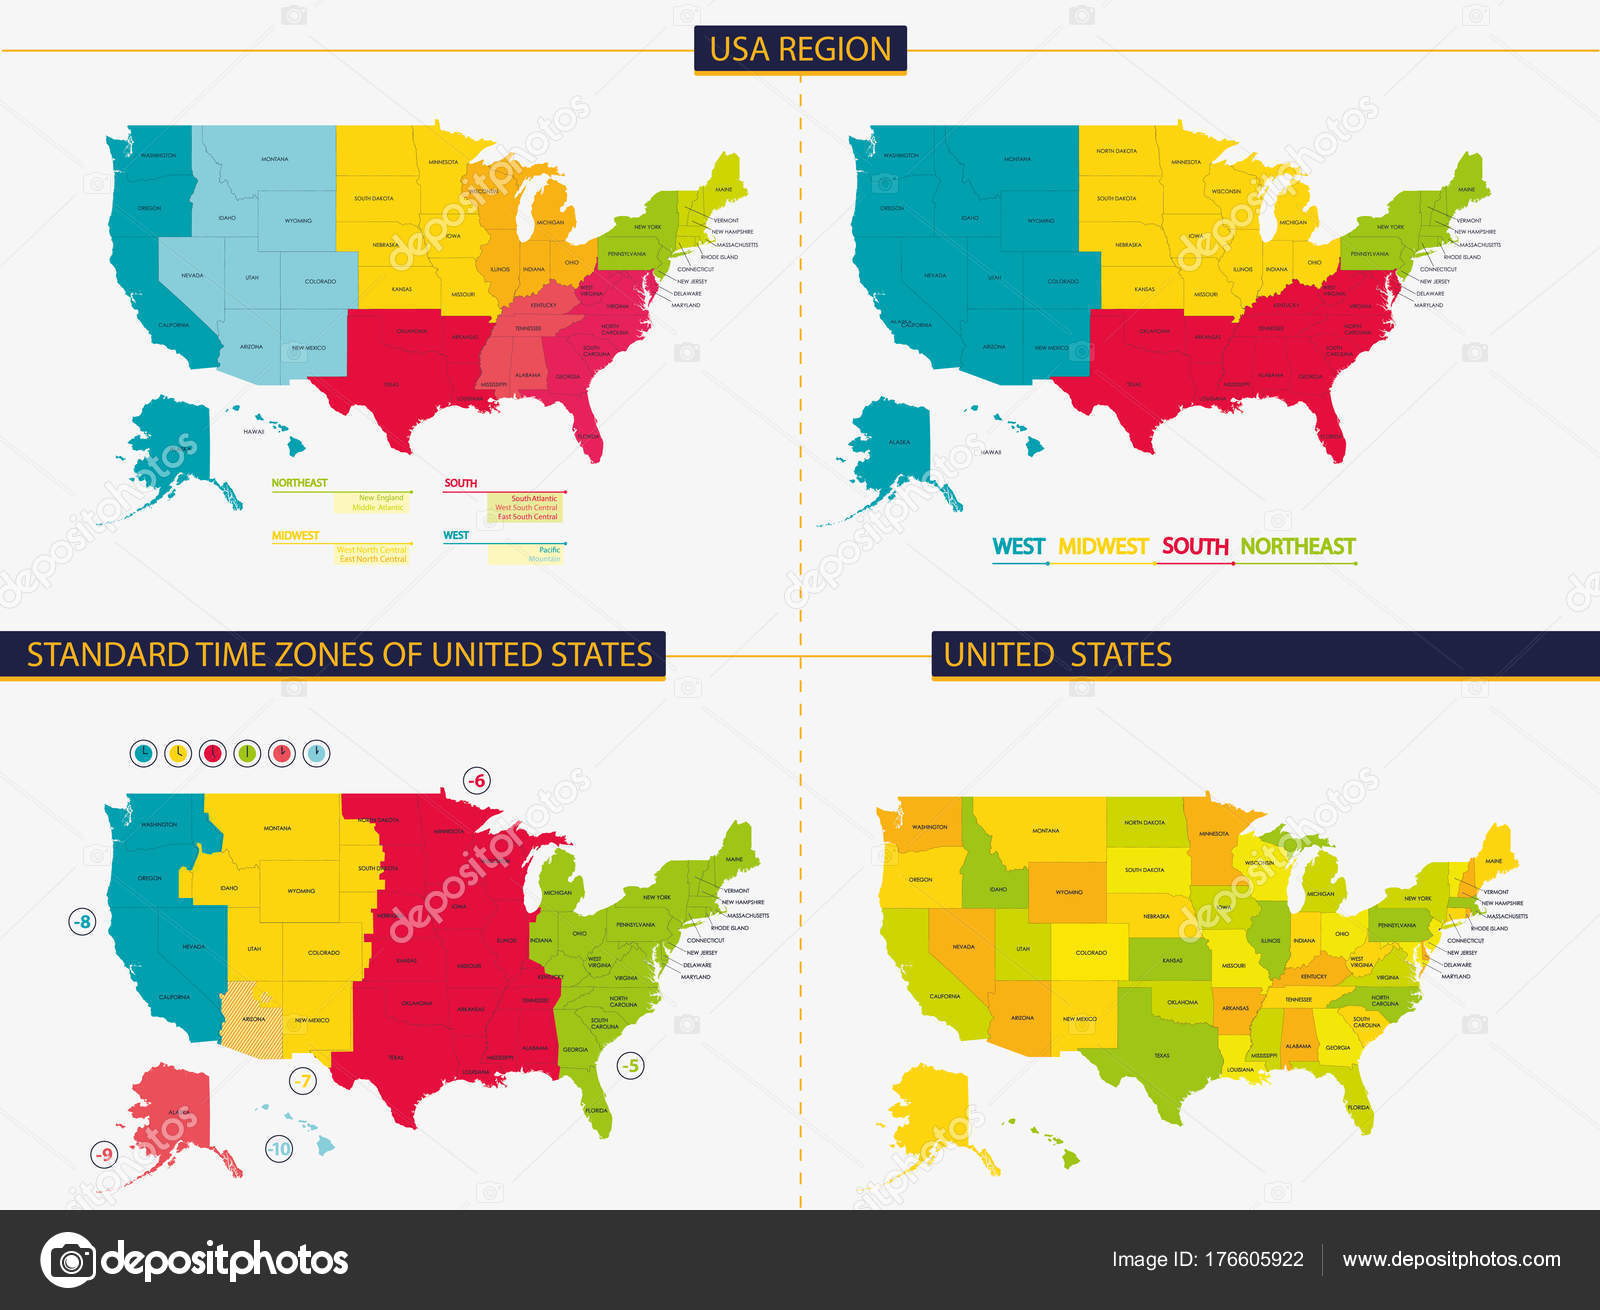 United States Standard Time Zones United States Usa Region ...